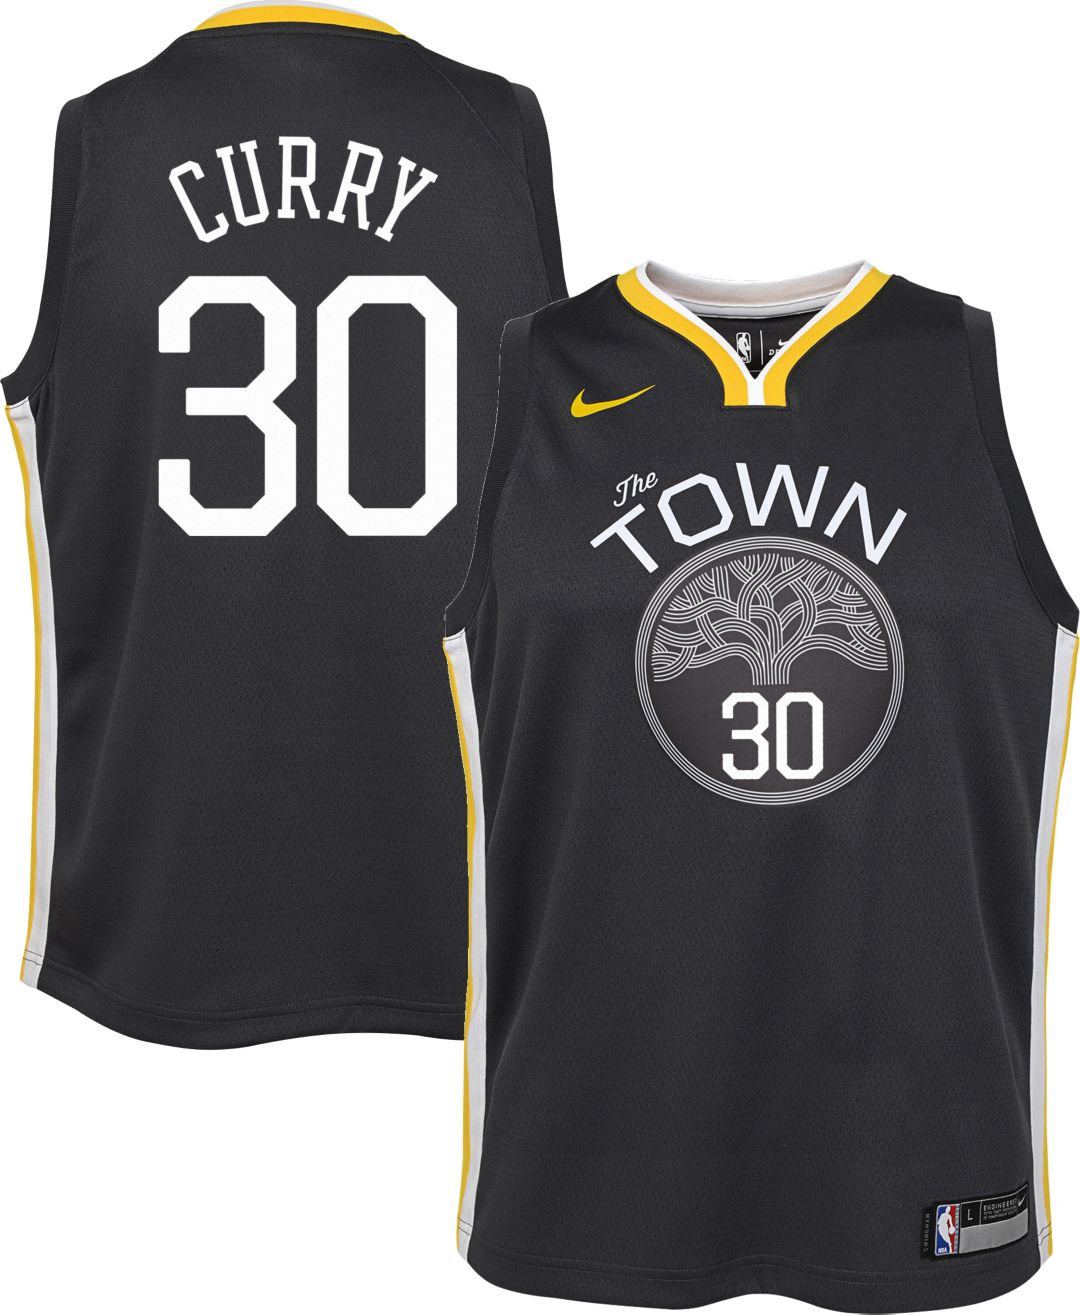 39536988aa4 Nike Youth Golden State Warriors Stephen Curry #30 Grey Dri-FIT Swingman  Jersey 1